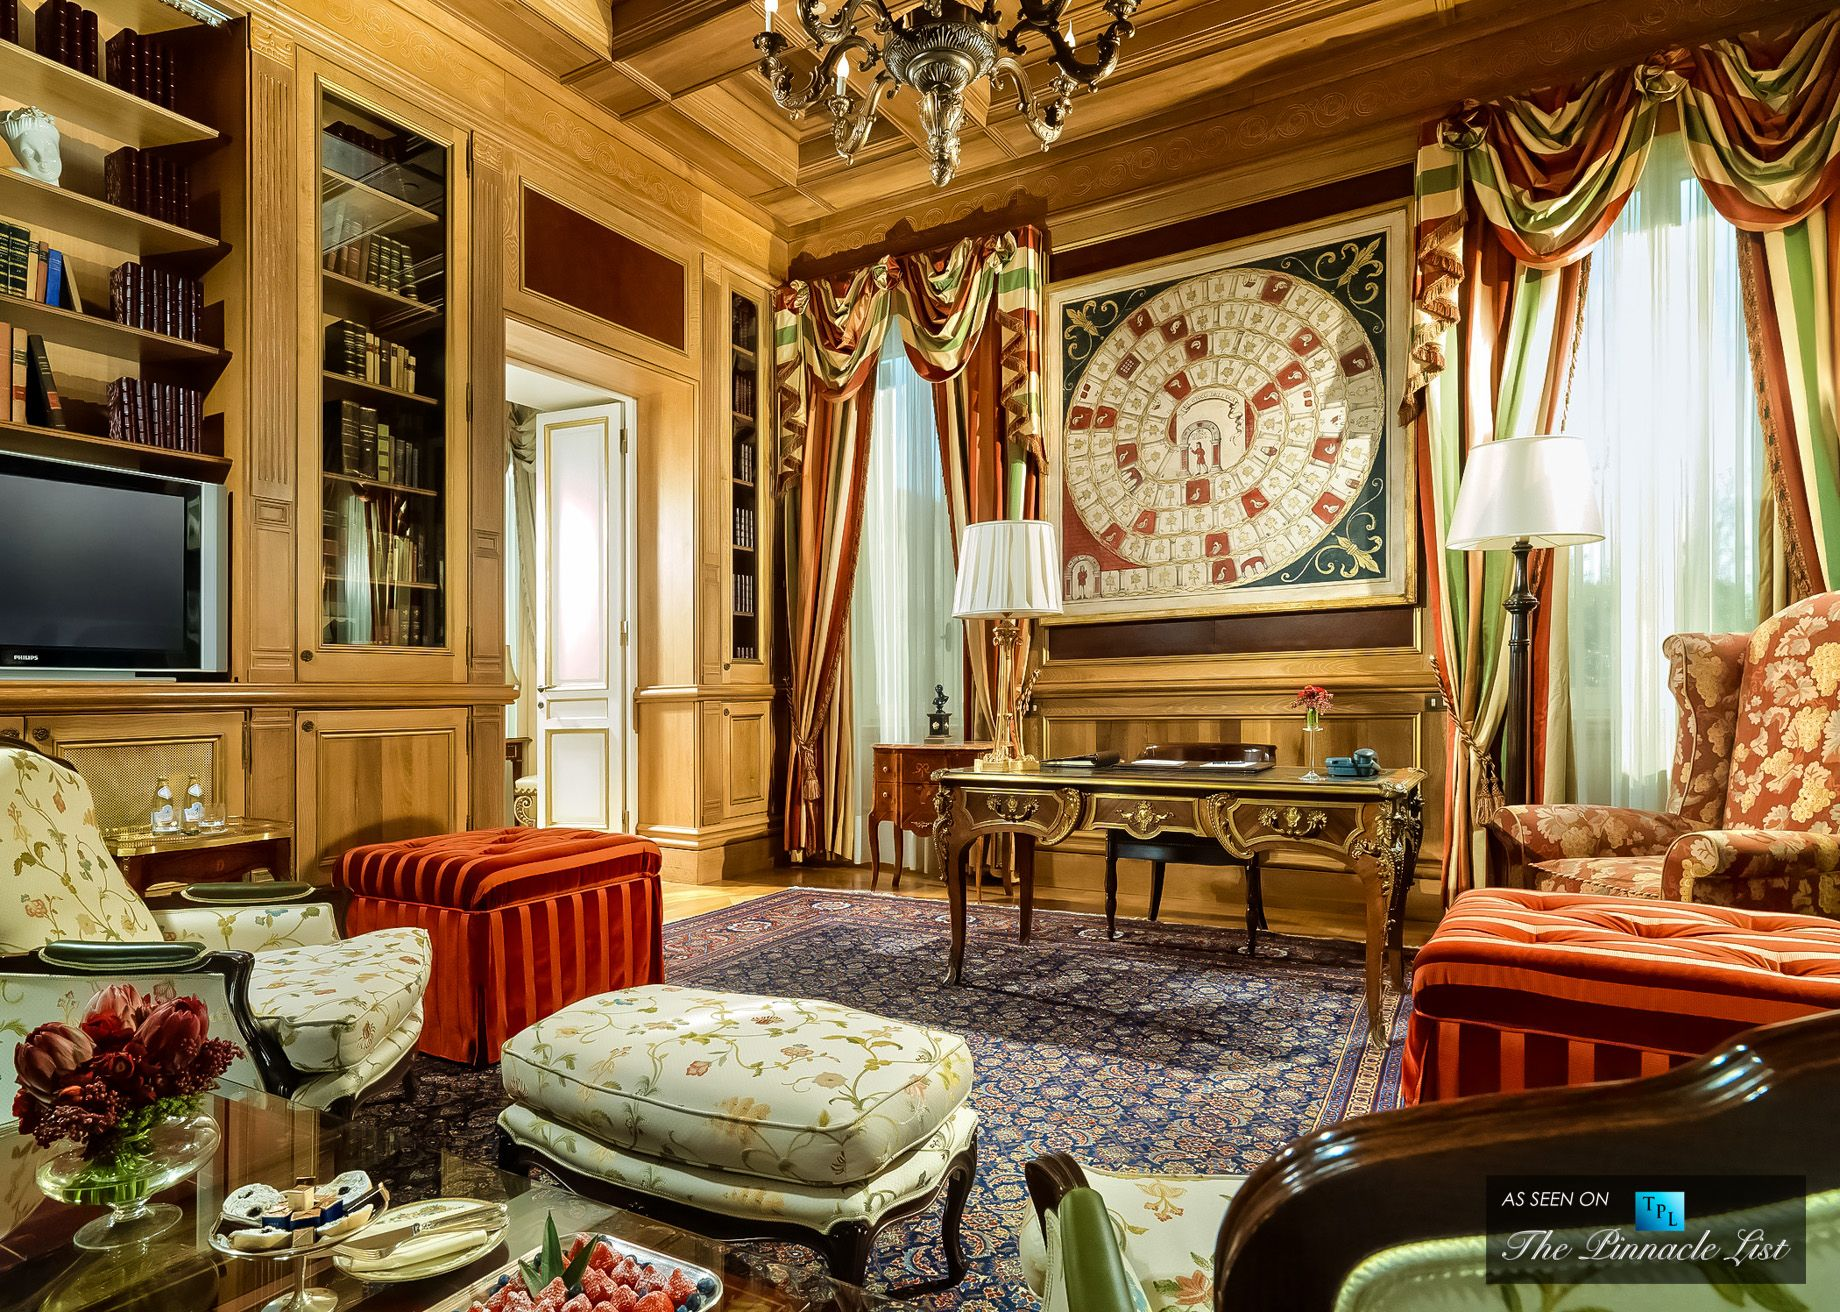 St regis luxury hotel rome italy royal suite studio for Studio design roma